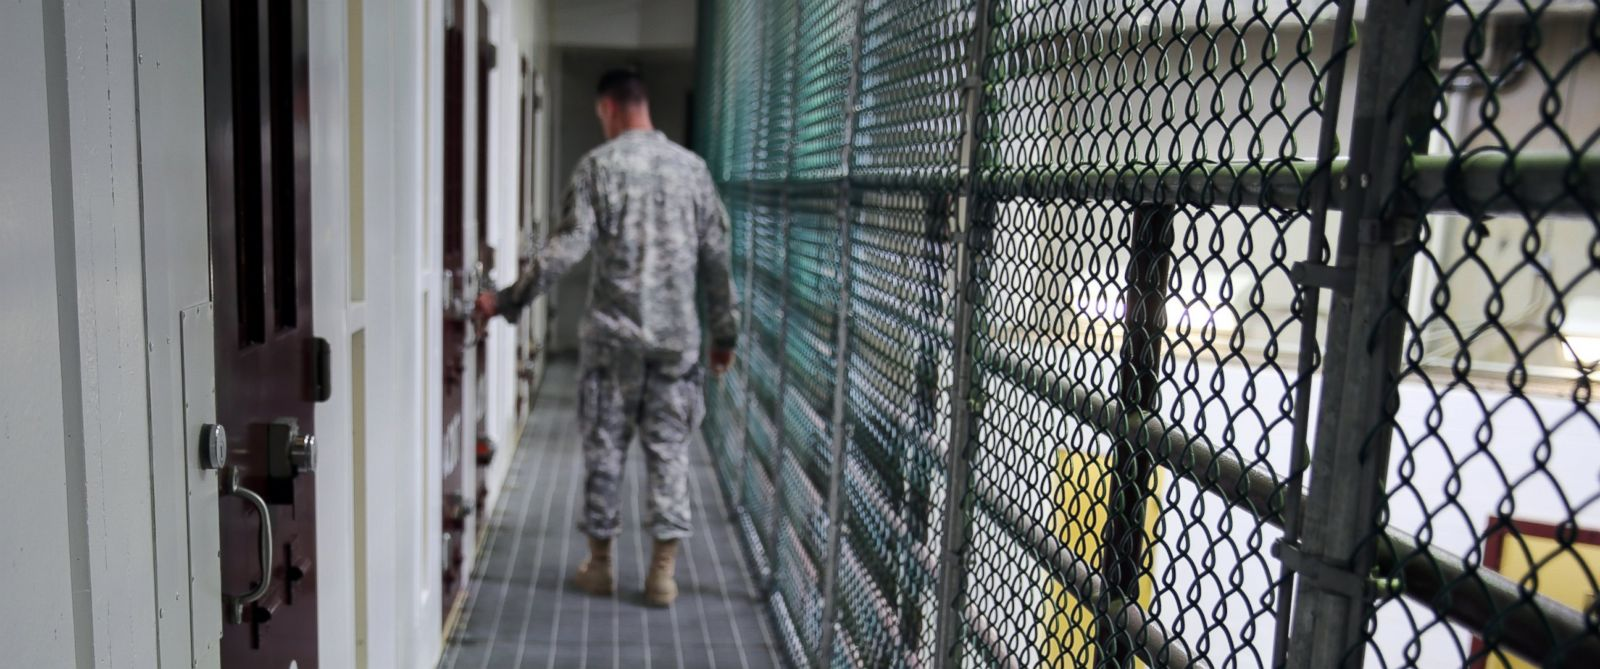 the benefits of keep the guantanamo bay open Trump signs order to keep guantanamo prison open trump on tuesday signed a new executive order to keep open the us military prison at guantanamo bay.